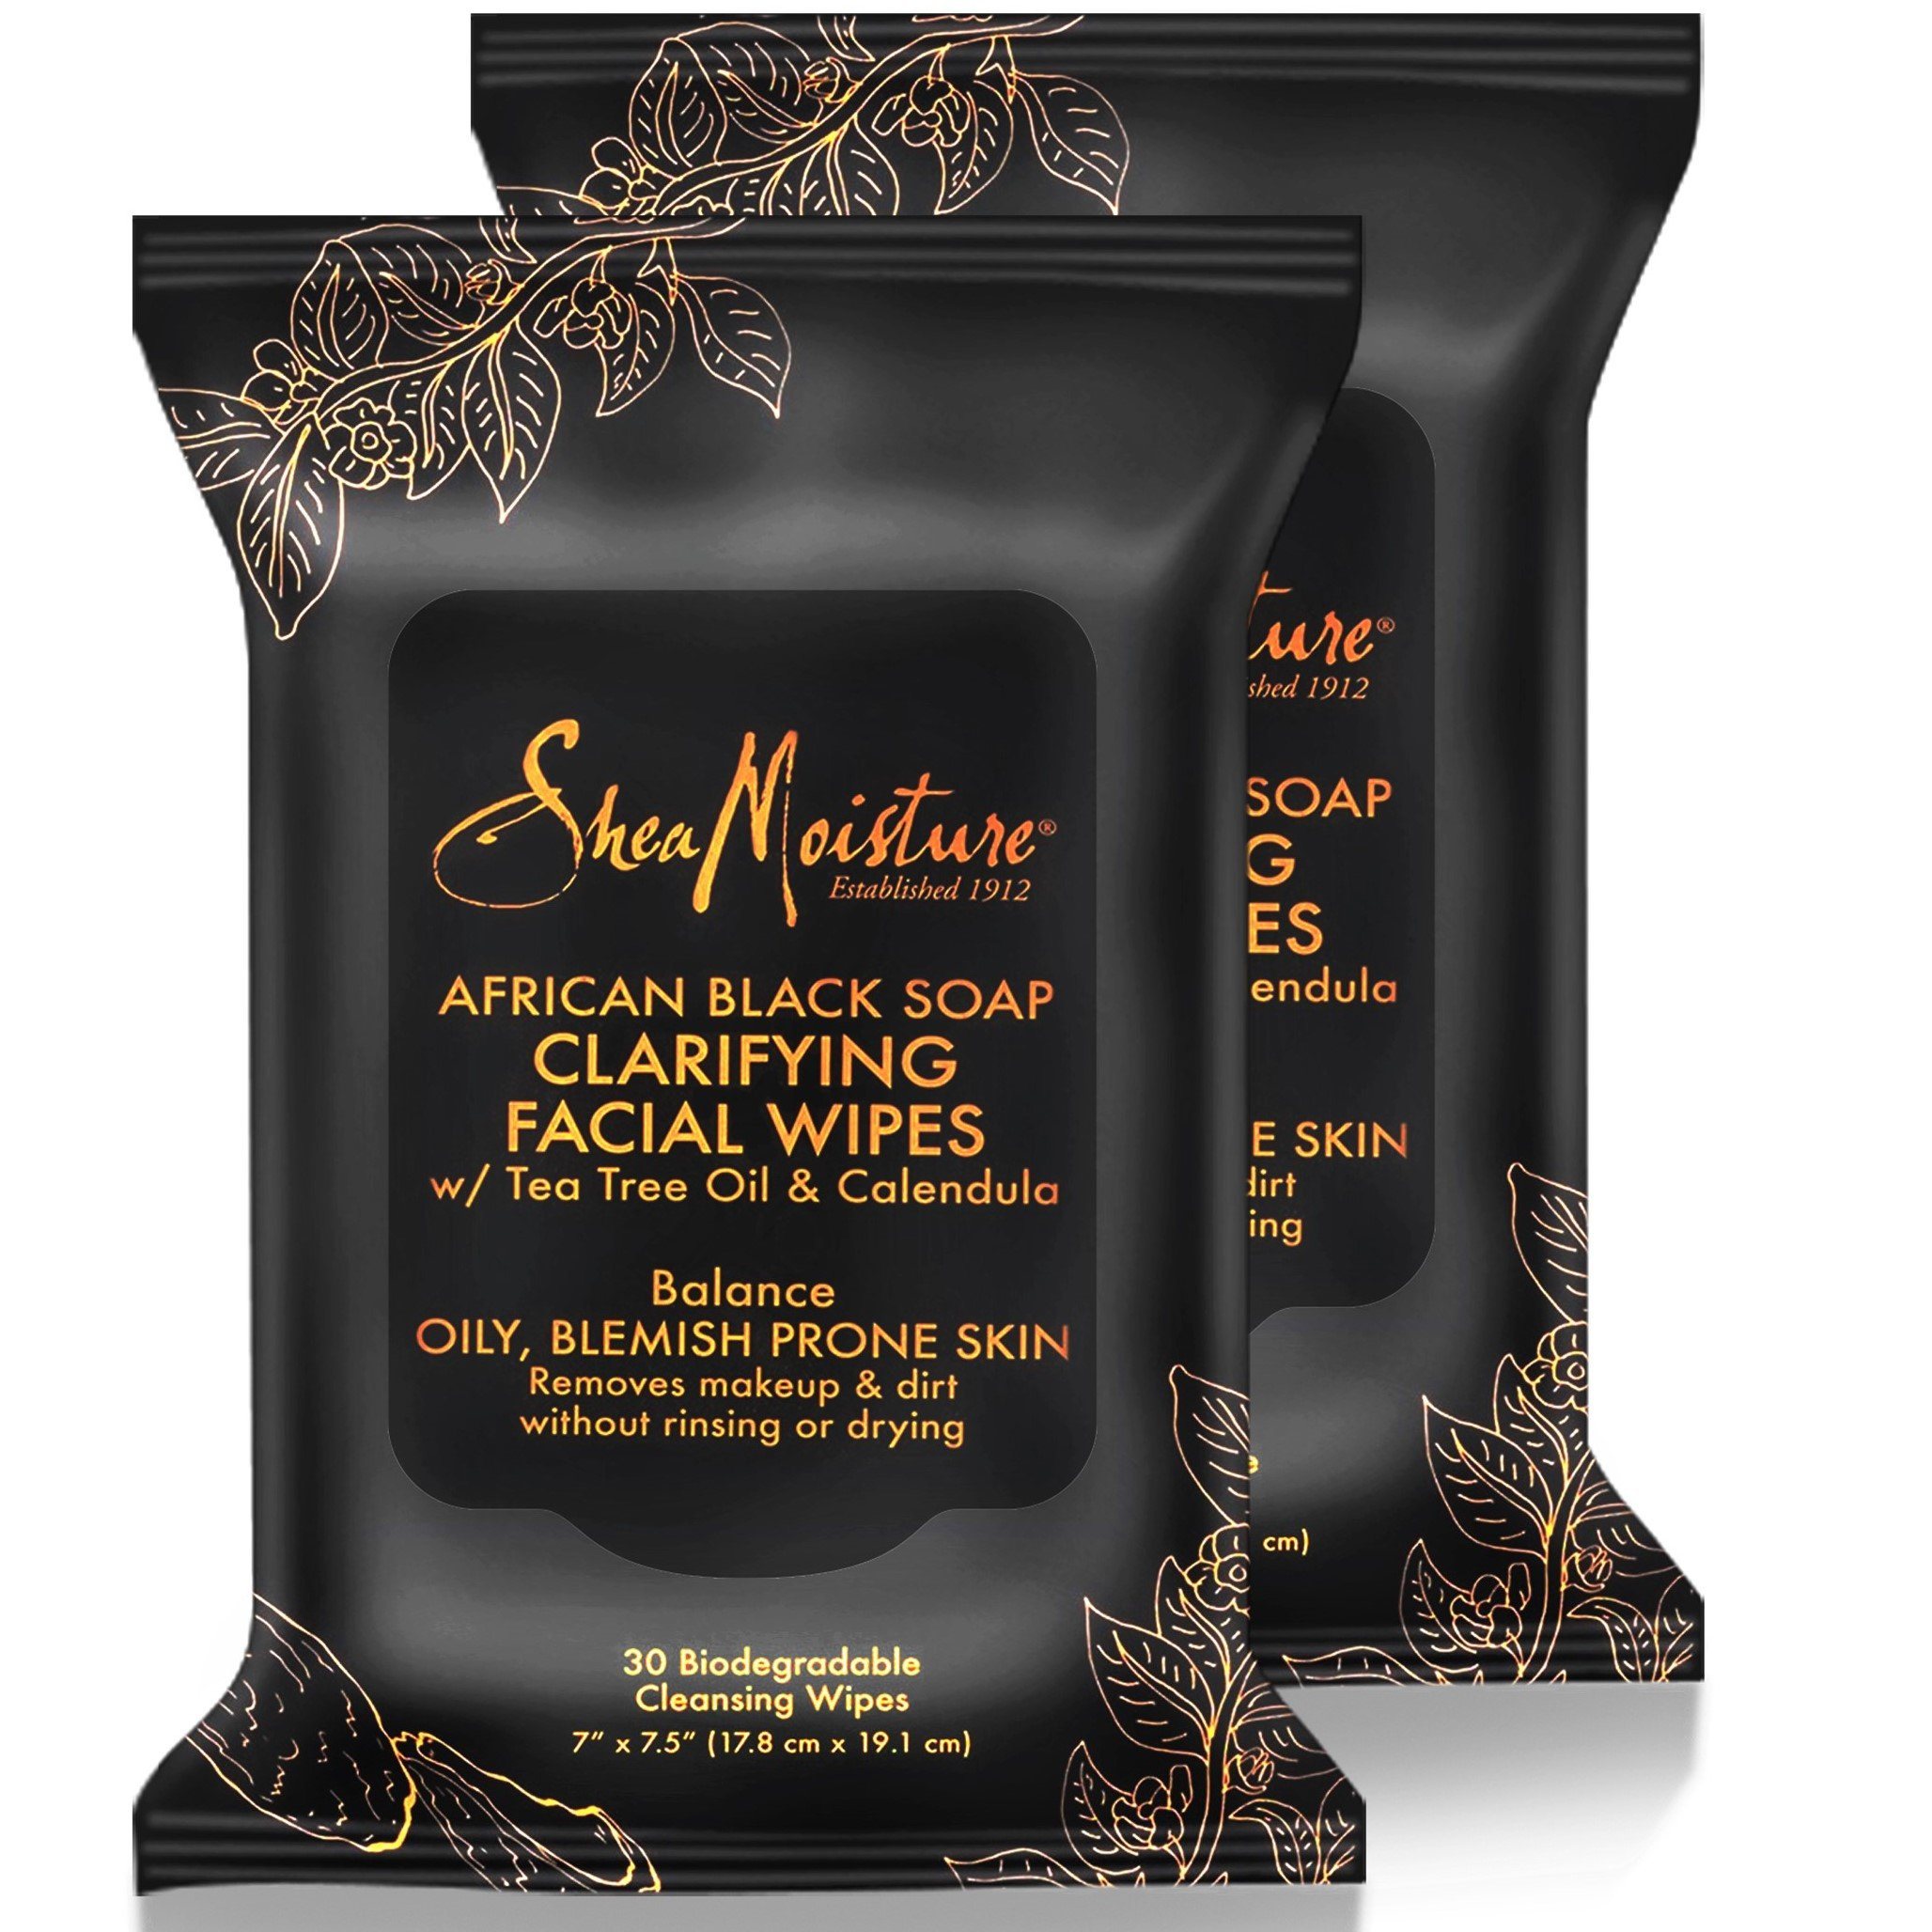 Shea Moisture Makeup Remover Face Wipes, African Black Soap, With Tea Tree Oil & Calendula, Removes Makeup & Dirt to Clarify Oily Blemish Prone Skin, Pack of 2; 30 Wipes Per Pack